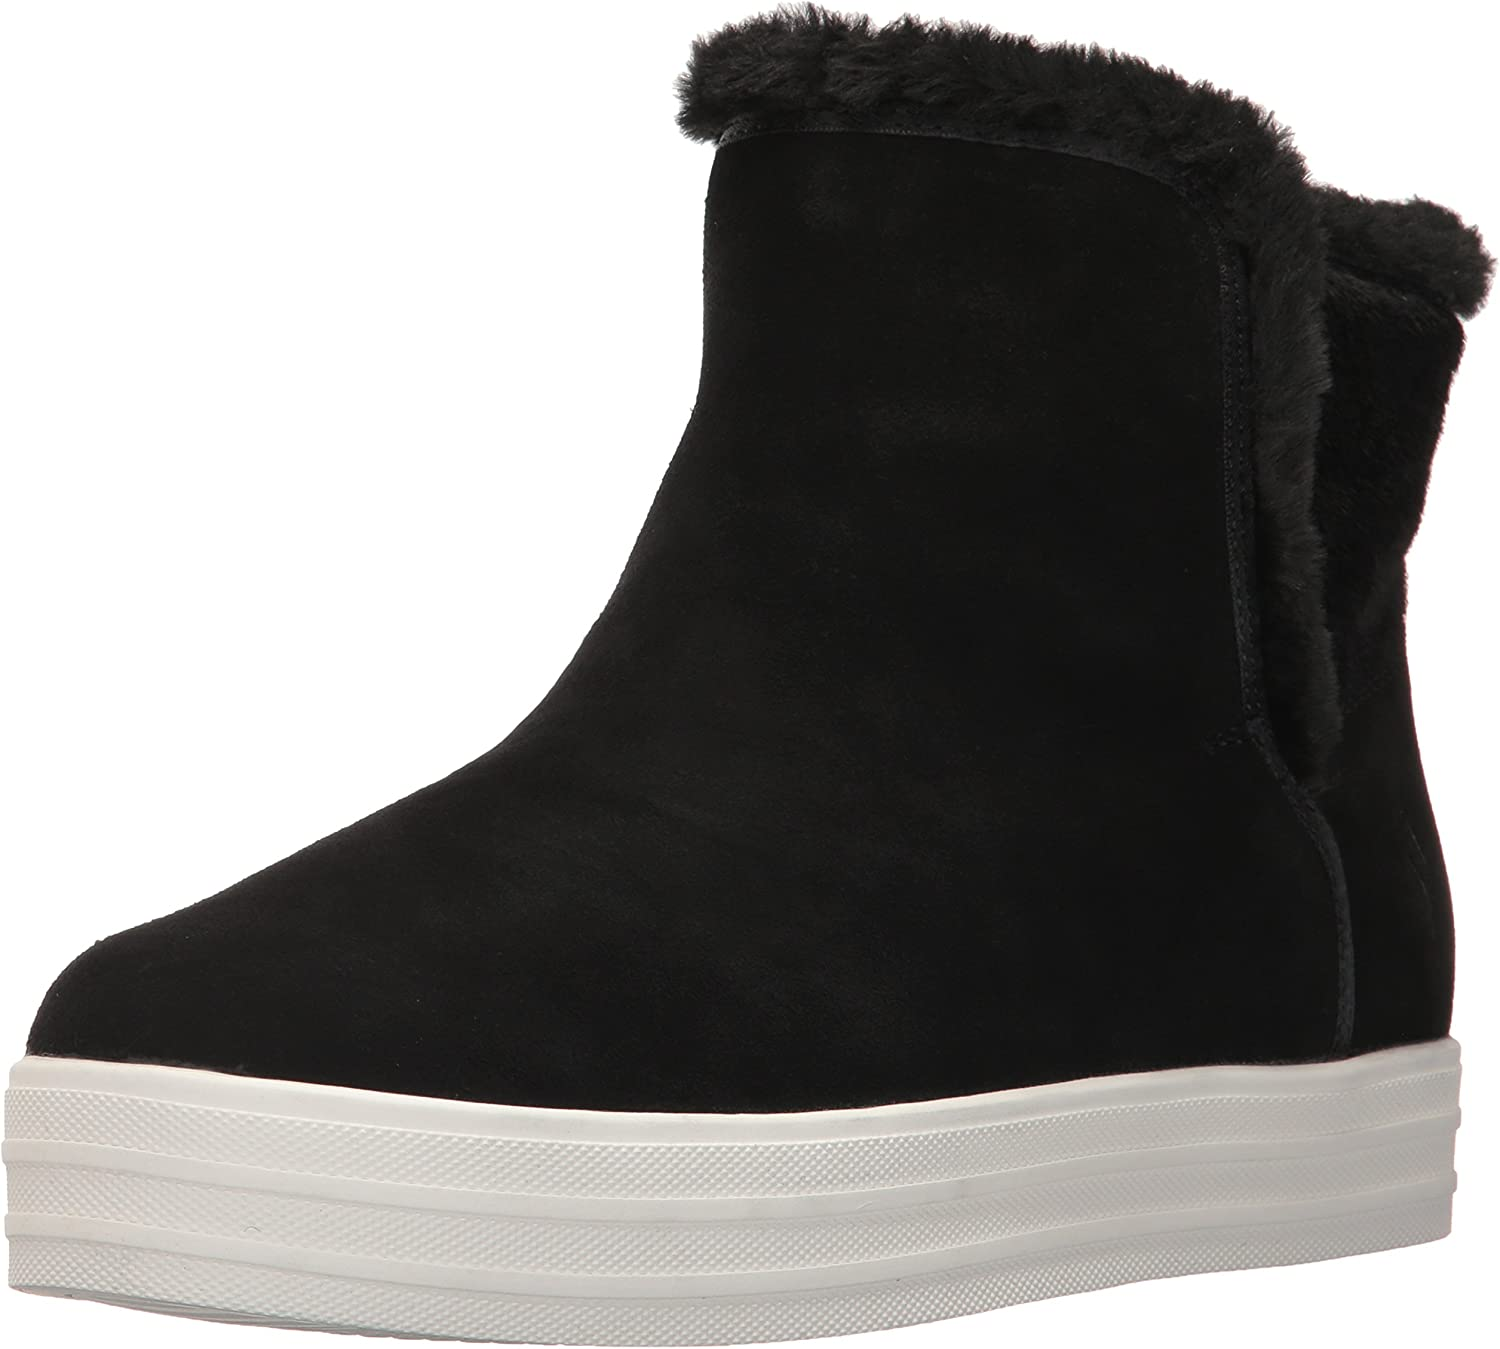 Skechers Double Up-Over The Edge, Botines para Mujer